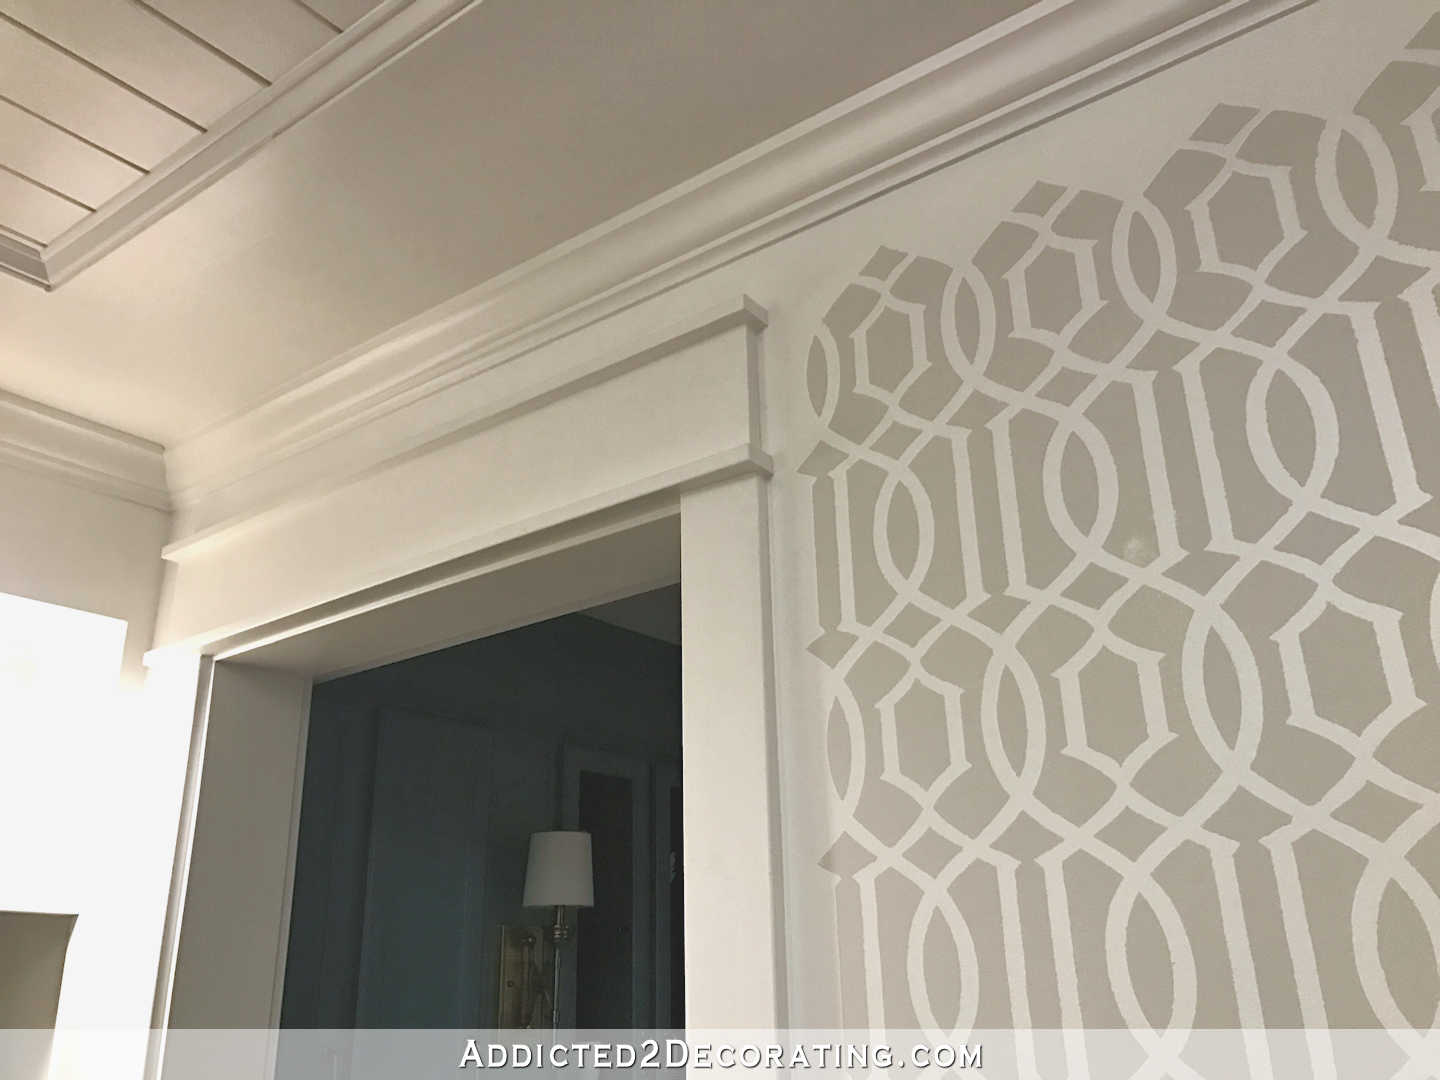 stenciled trellis design in Behr Polar Bear and Benjamin Moore Classic Gray on music room walls - 6